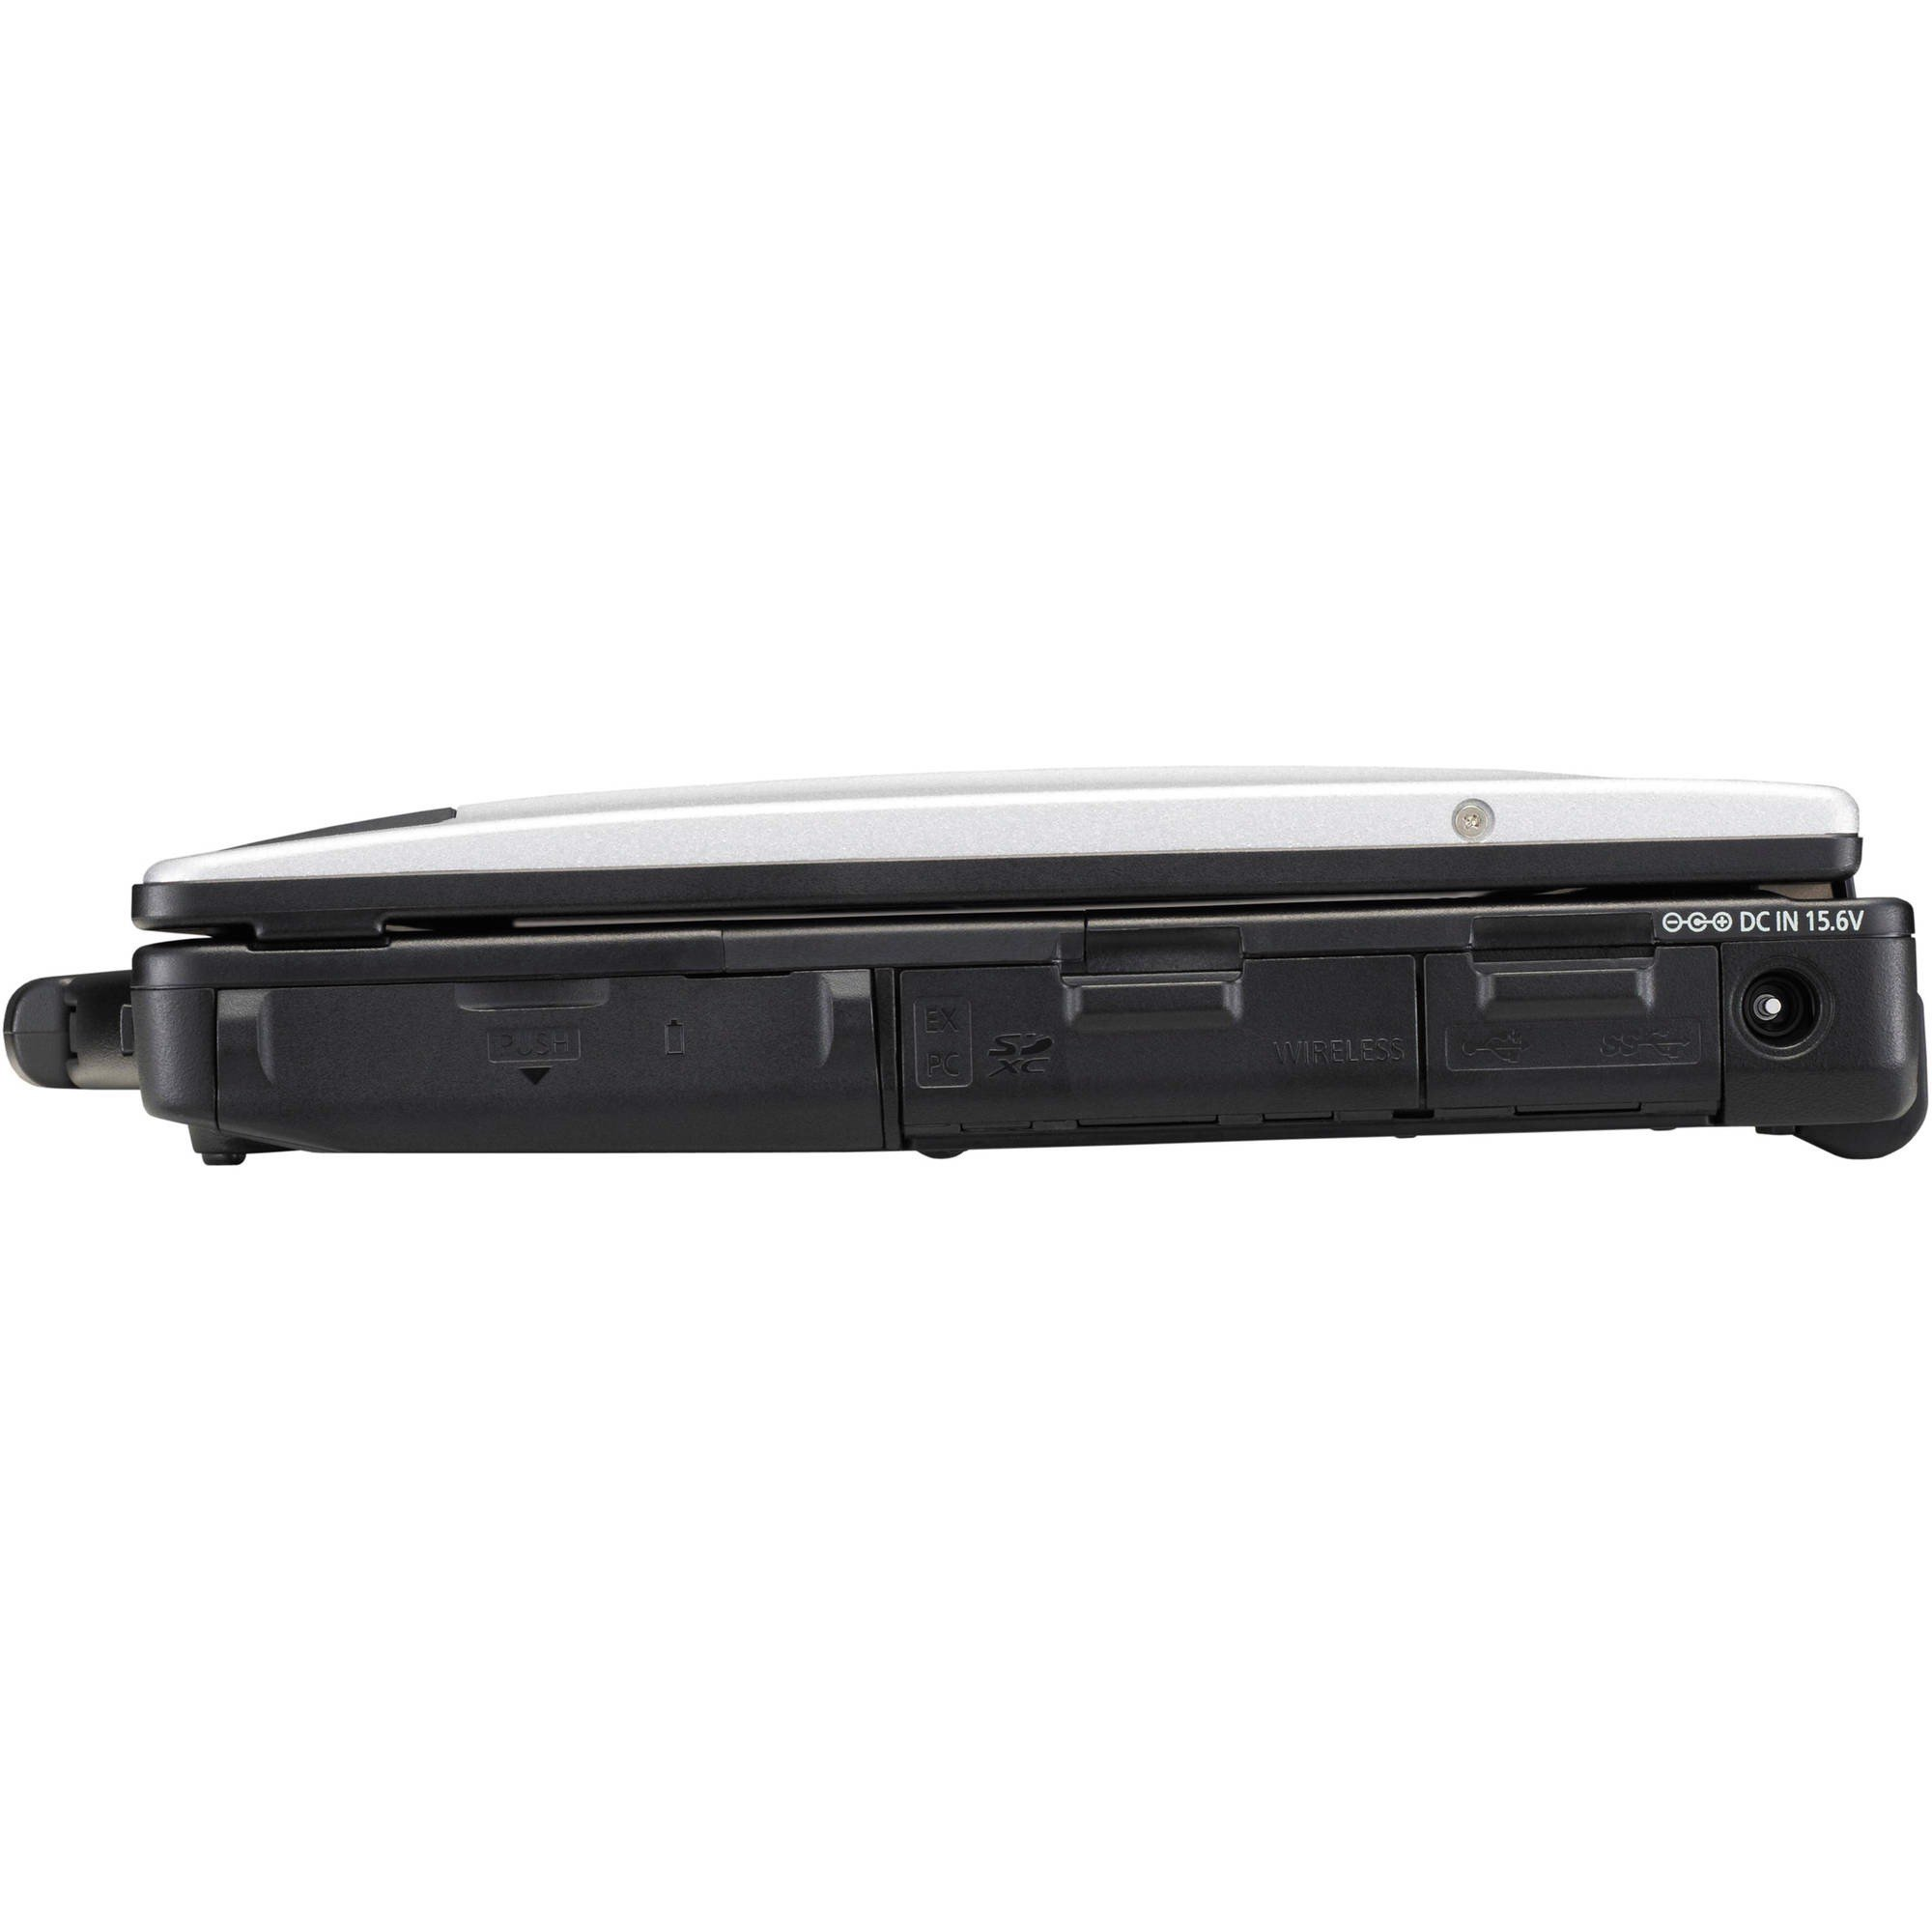 Panasonic Toughbook CF-53 MK3 Core i5-4310U